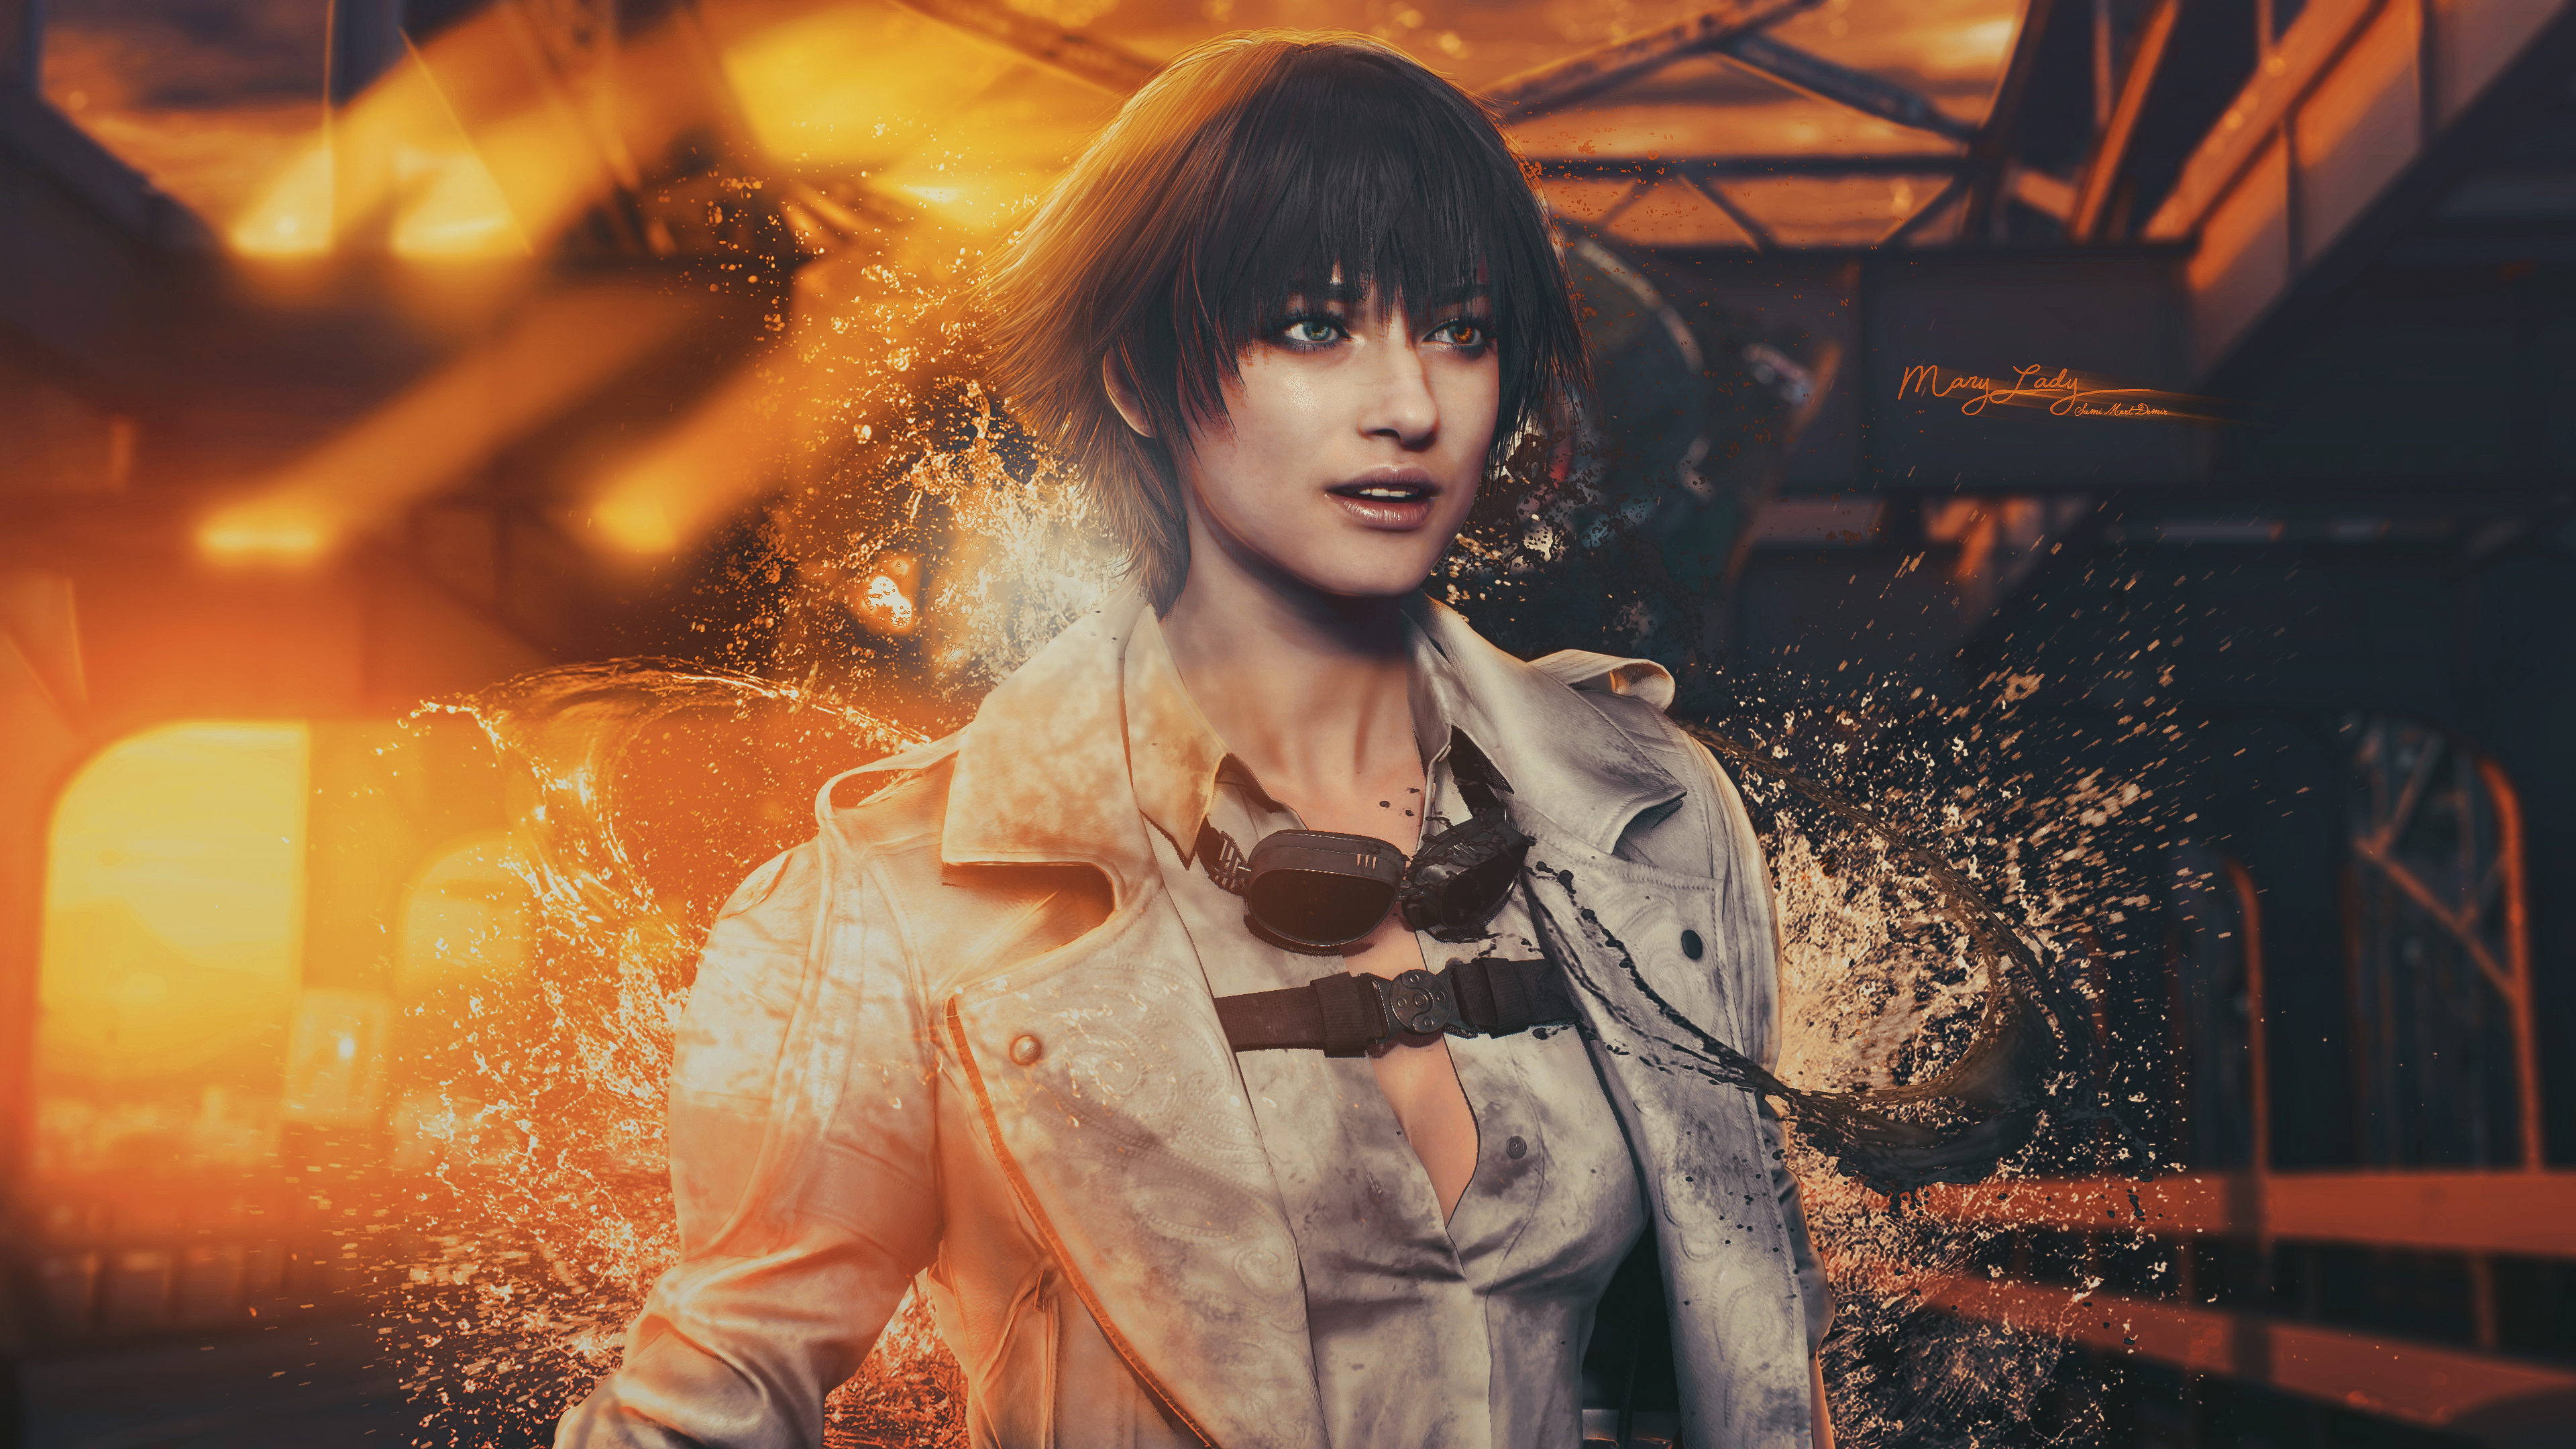 Mary Lady Devil May Cry 4k, HD Games, 4k Wallpapers